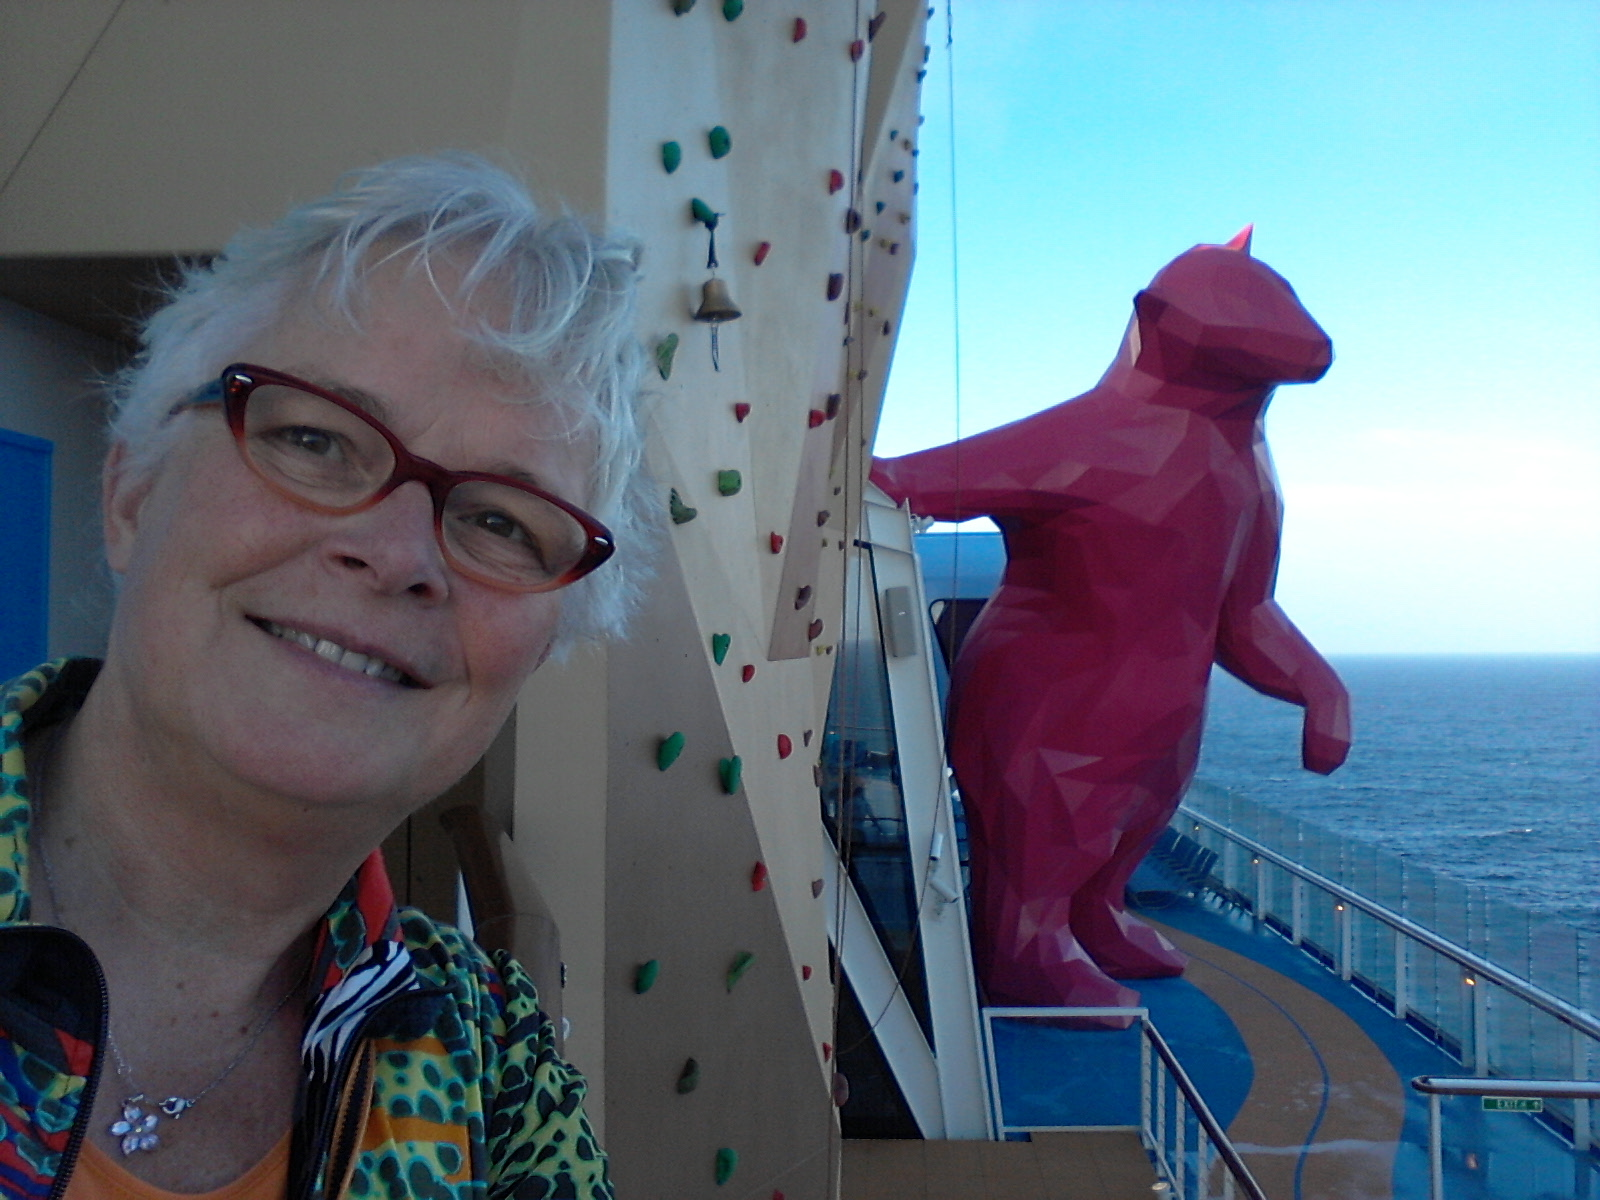 Museumblog Kunst op zee Quantum of the Seas Royal Caribbean Cruises © Wilma Lankhorst